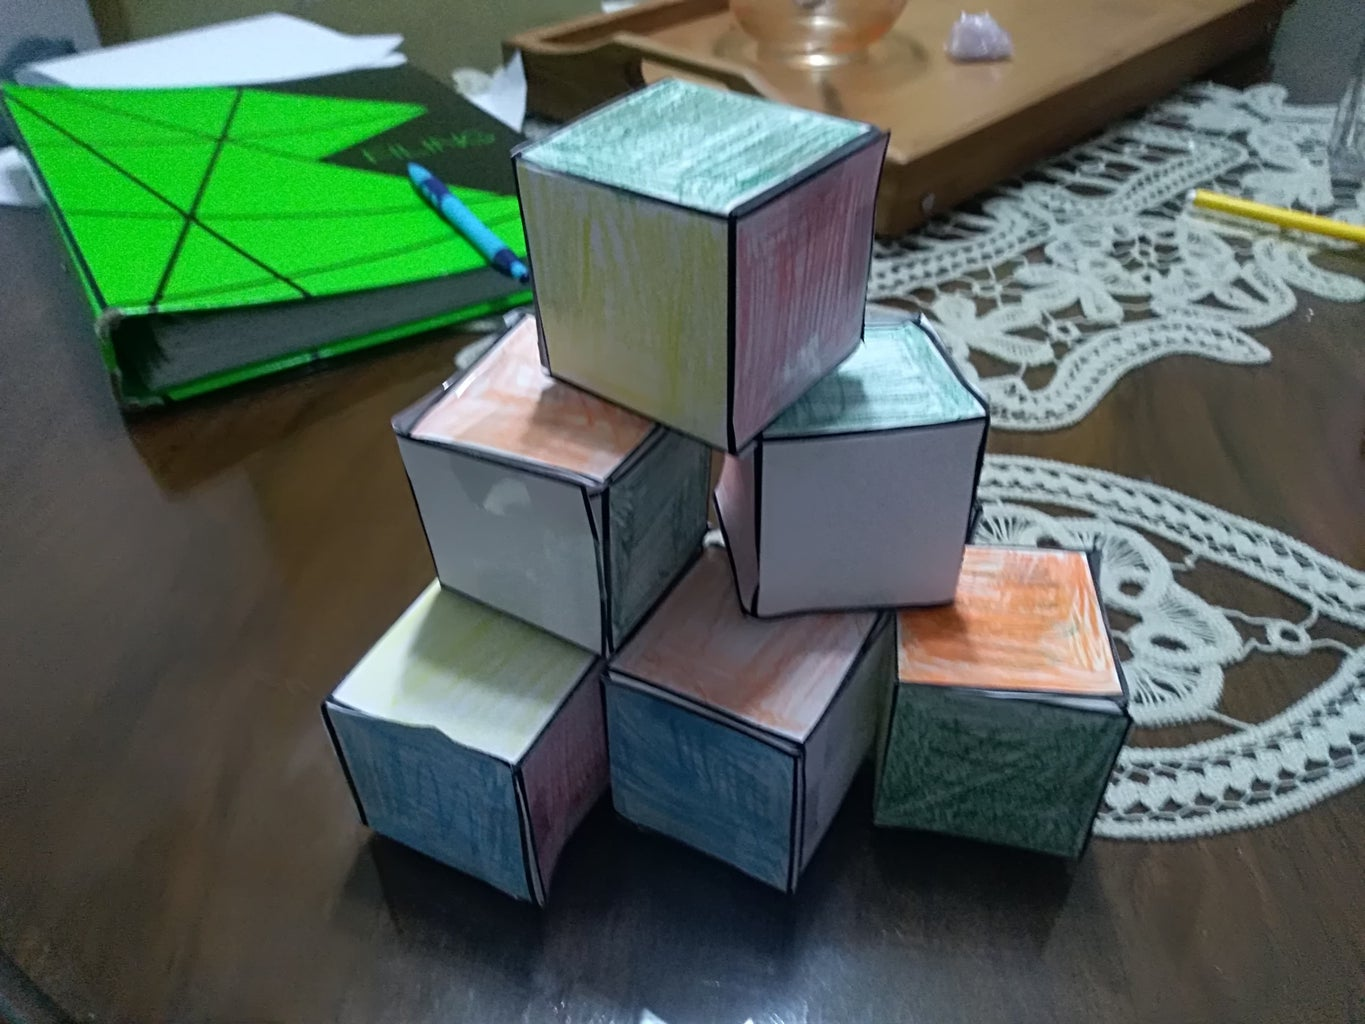 Connecting and Sewing the Cubes